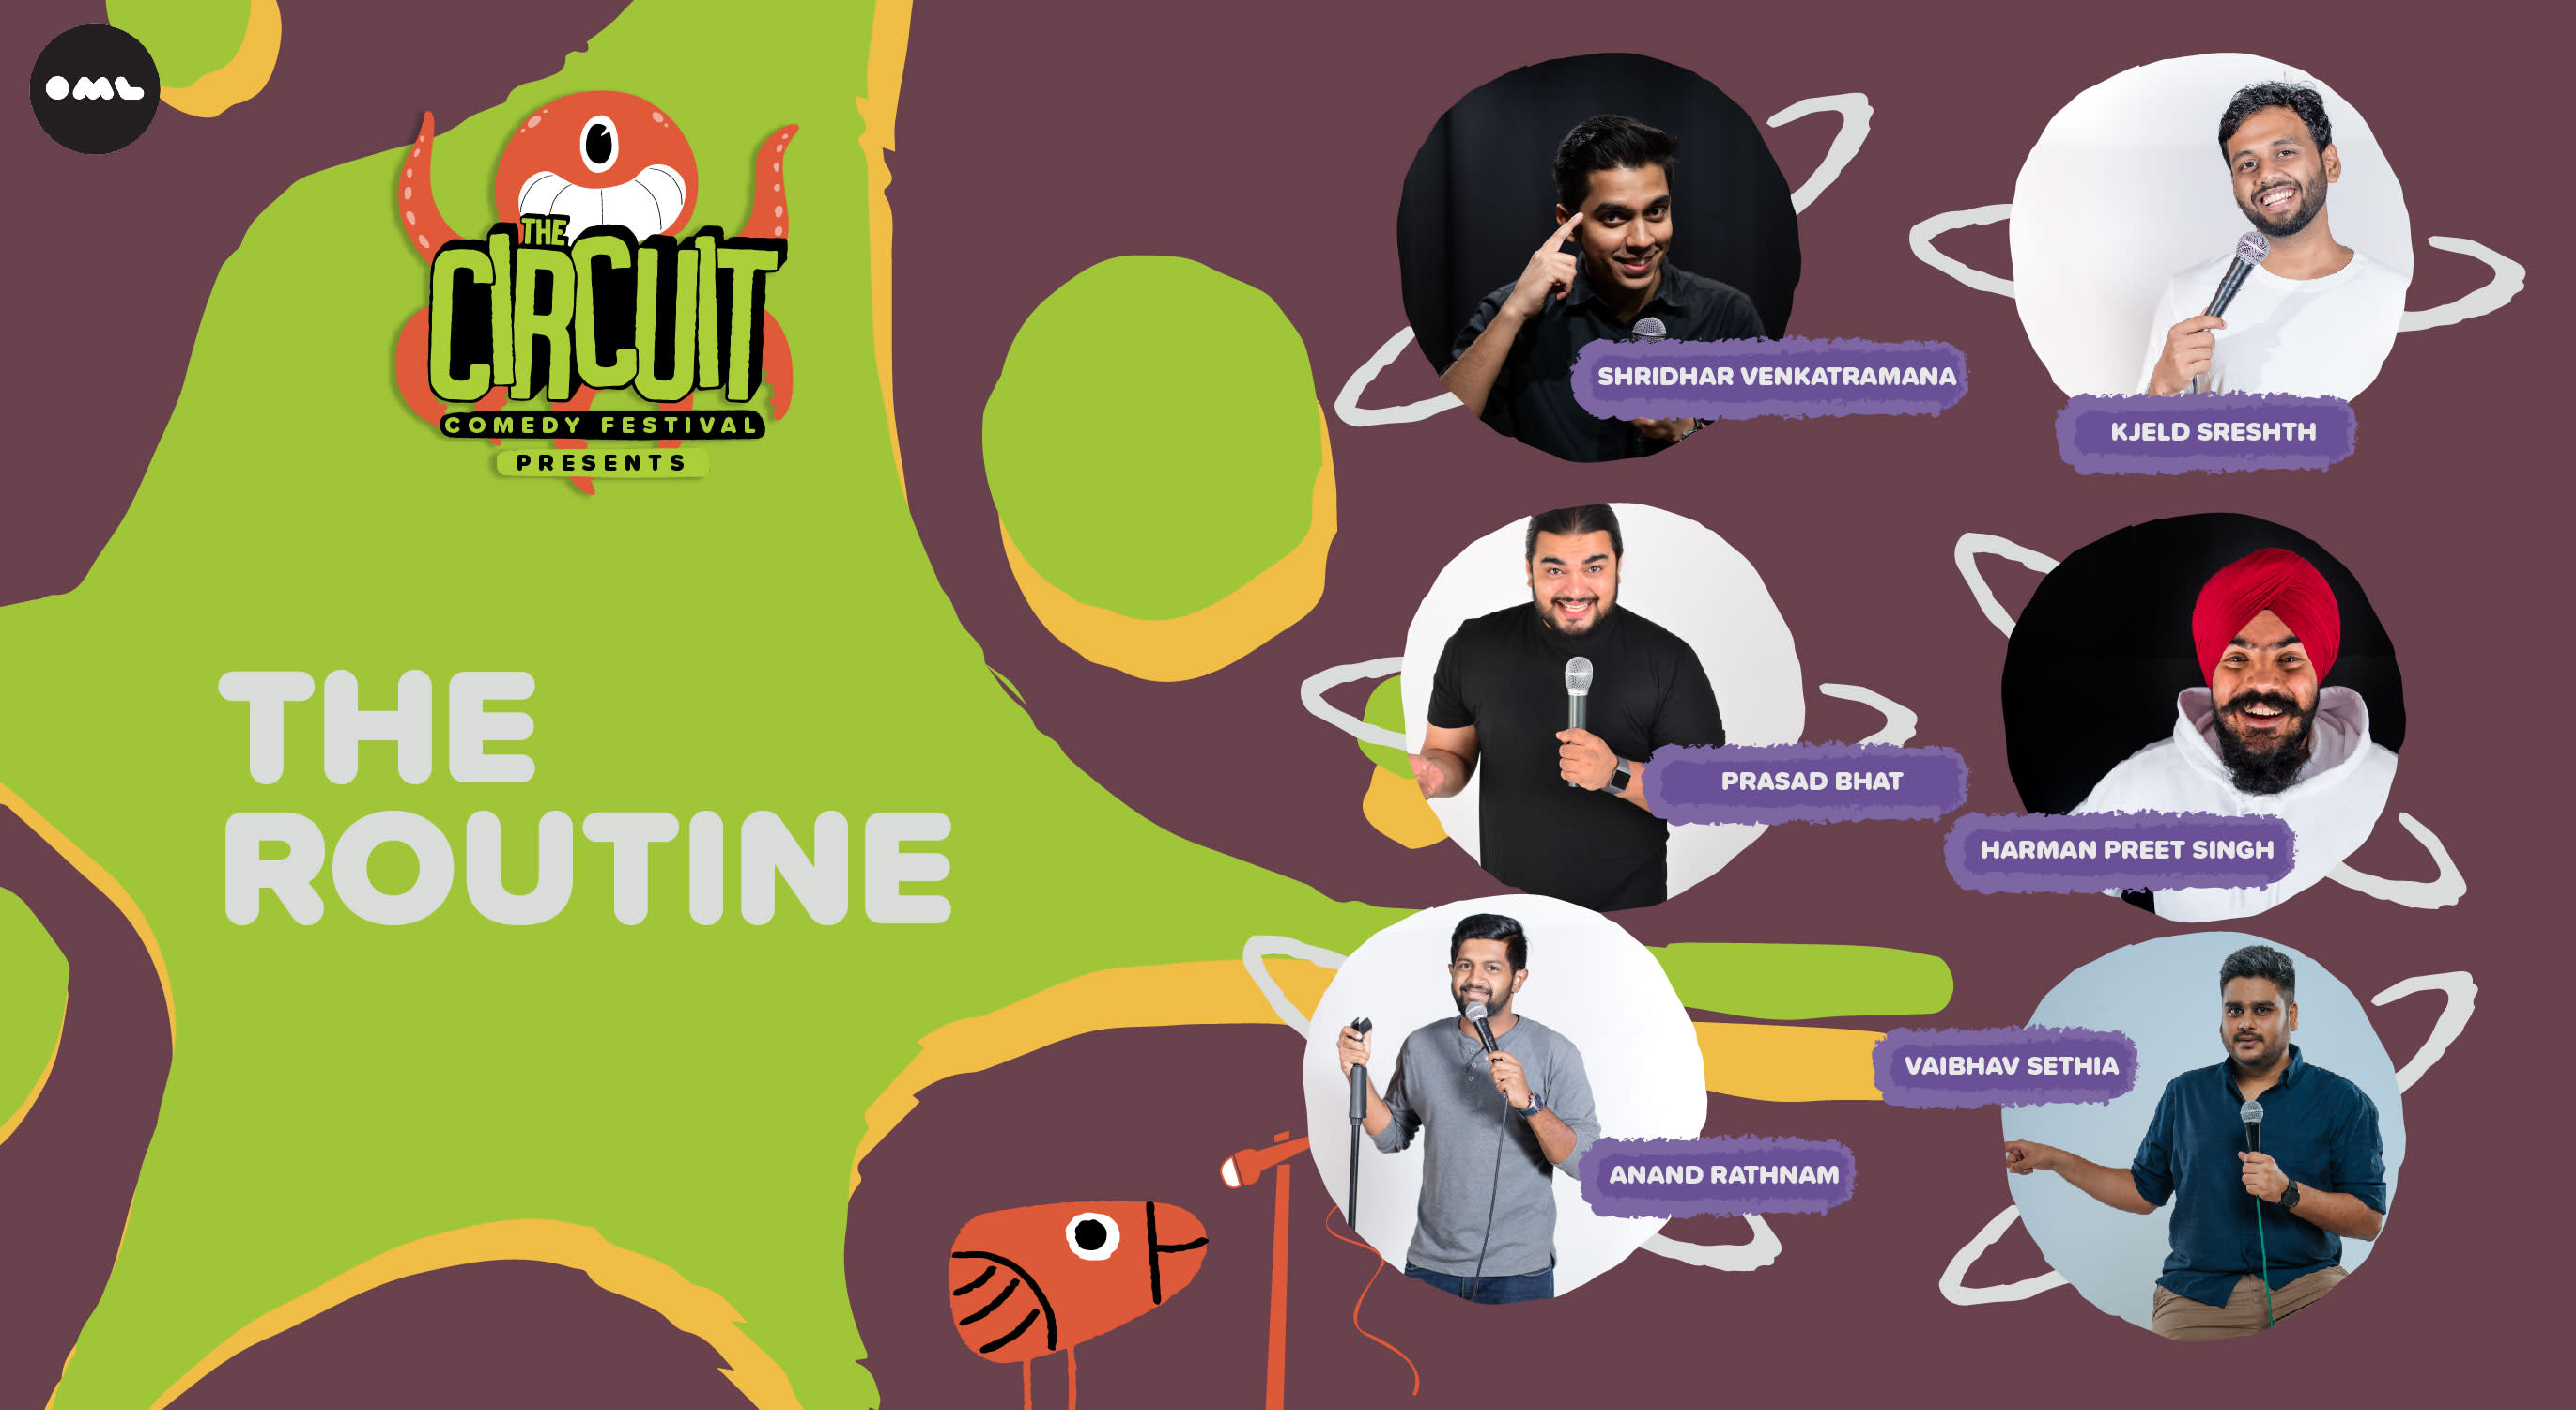 The Routine | The Circuit Comedy Festival, Bengaluru, Vapour Pub and Brewery